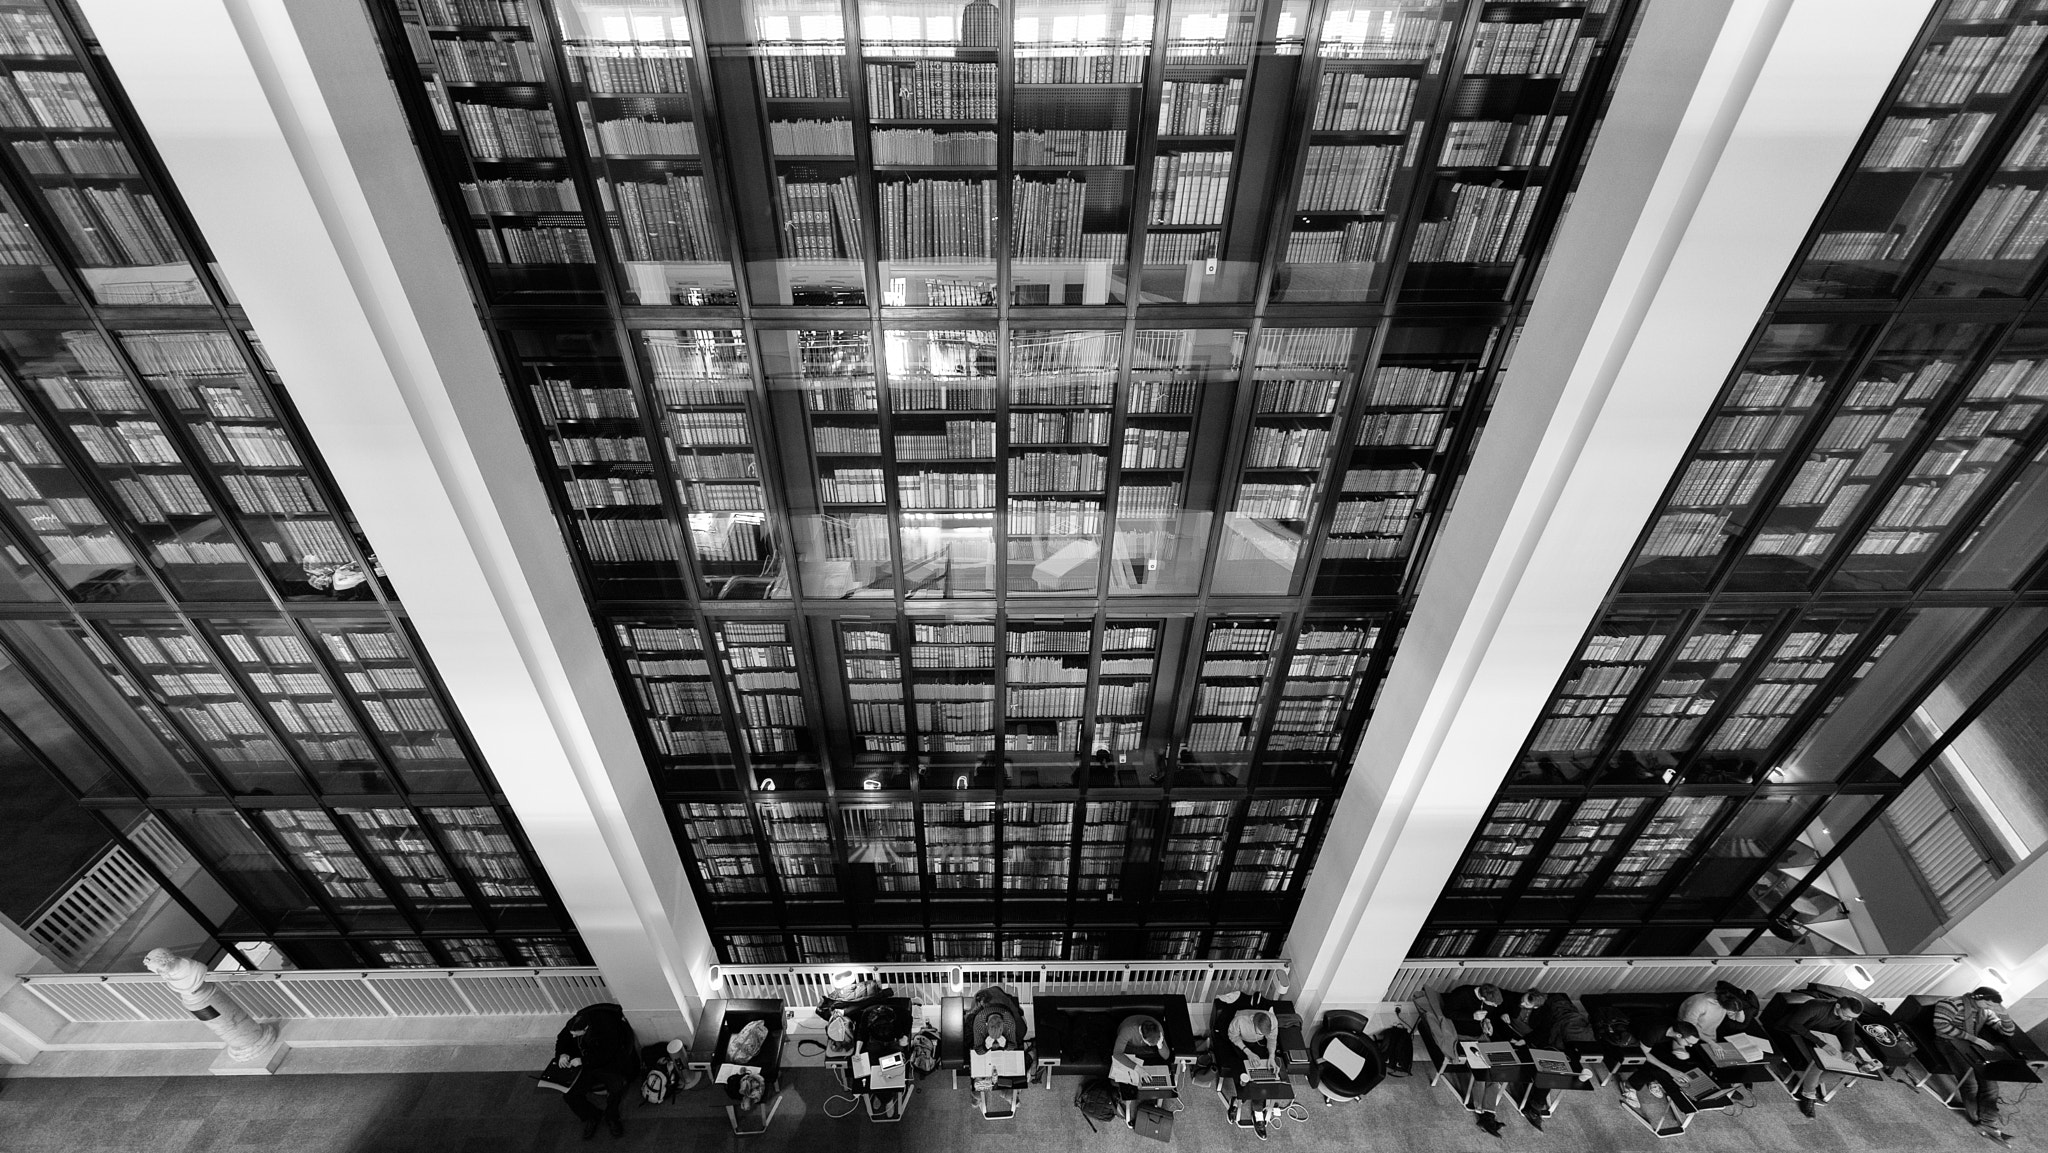 Photograph Book Worms by Sean Batten on 500px